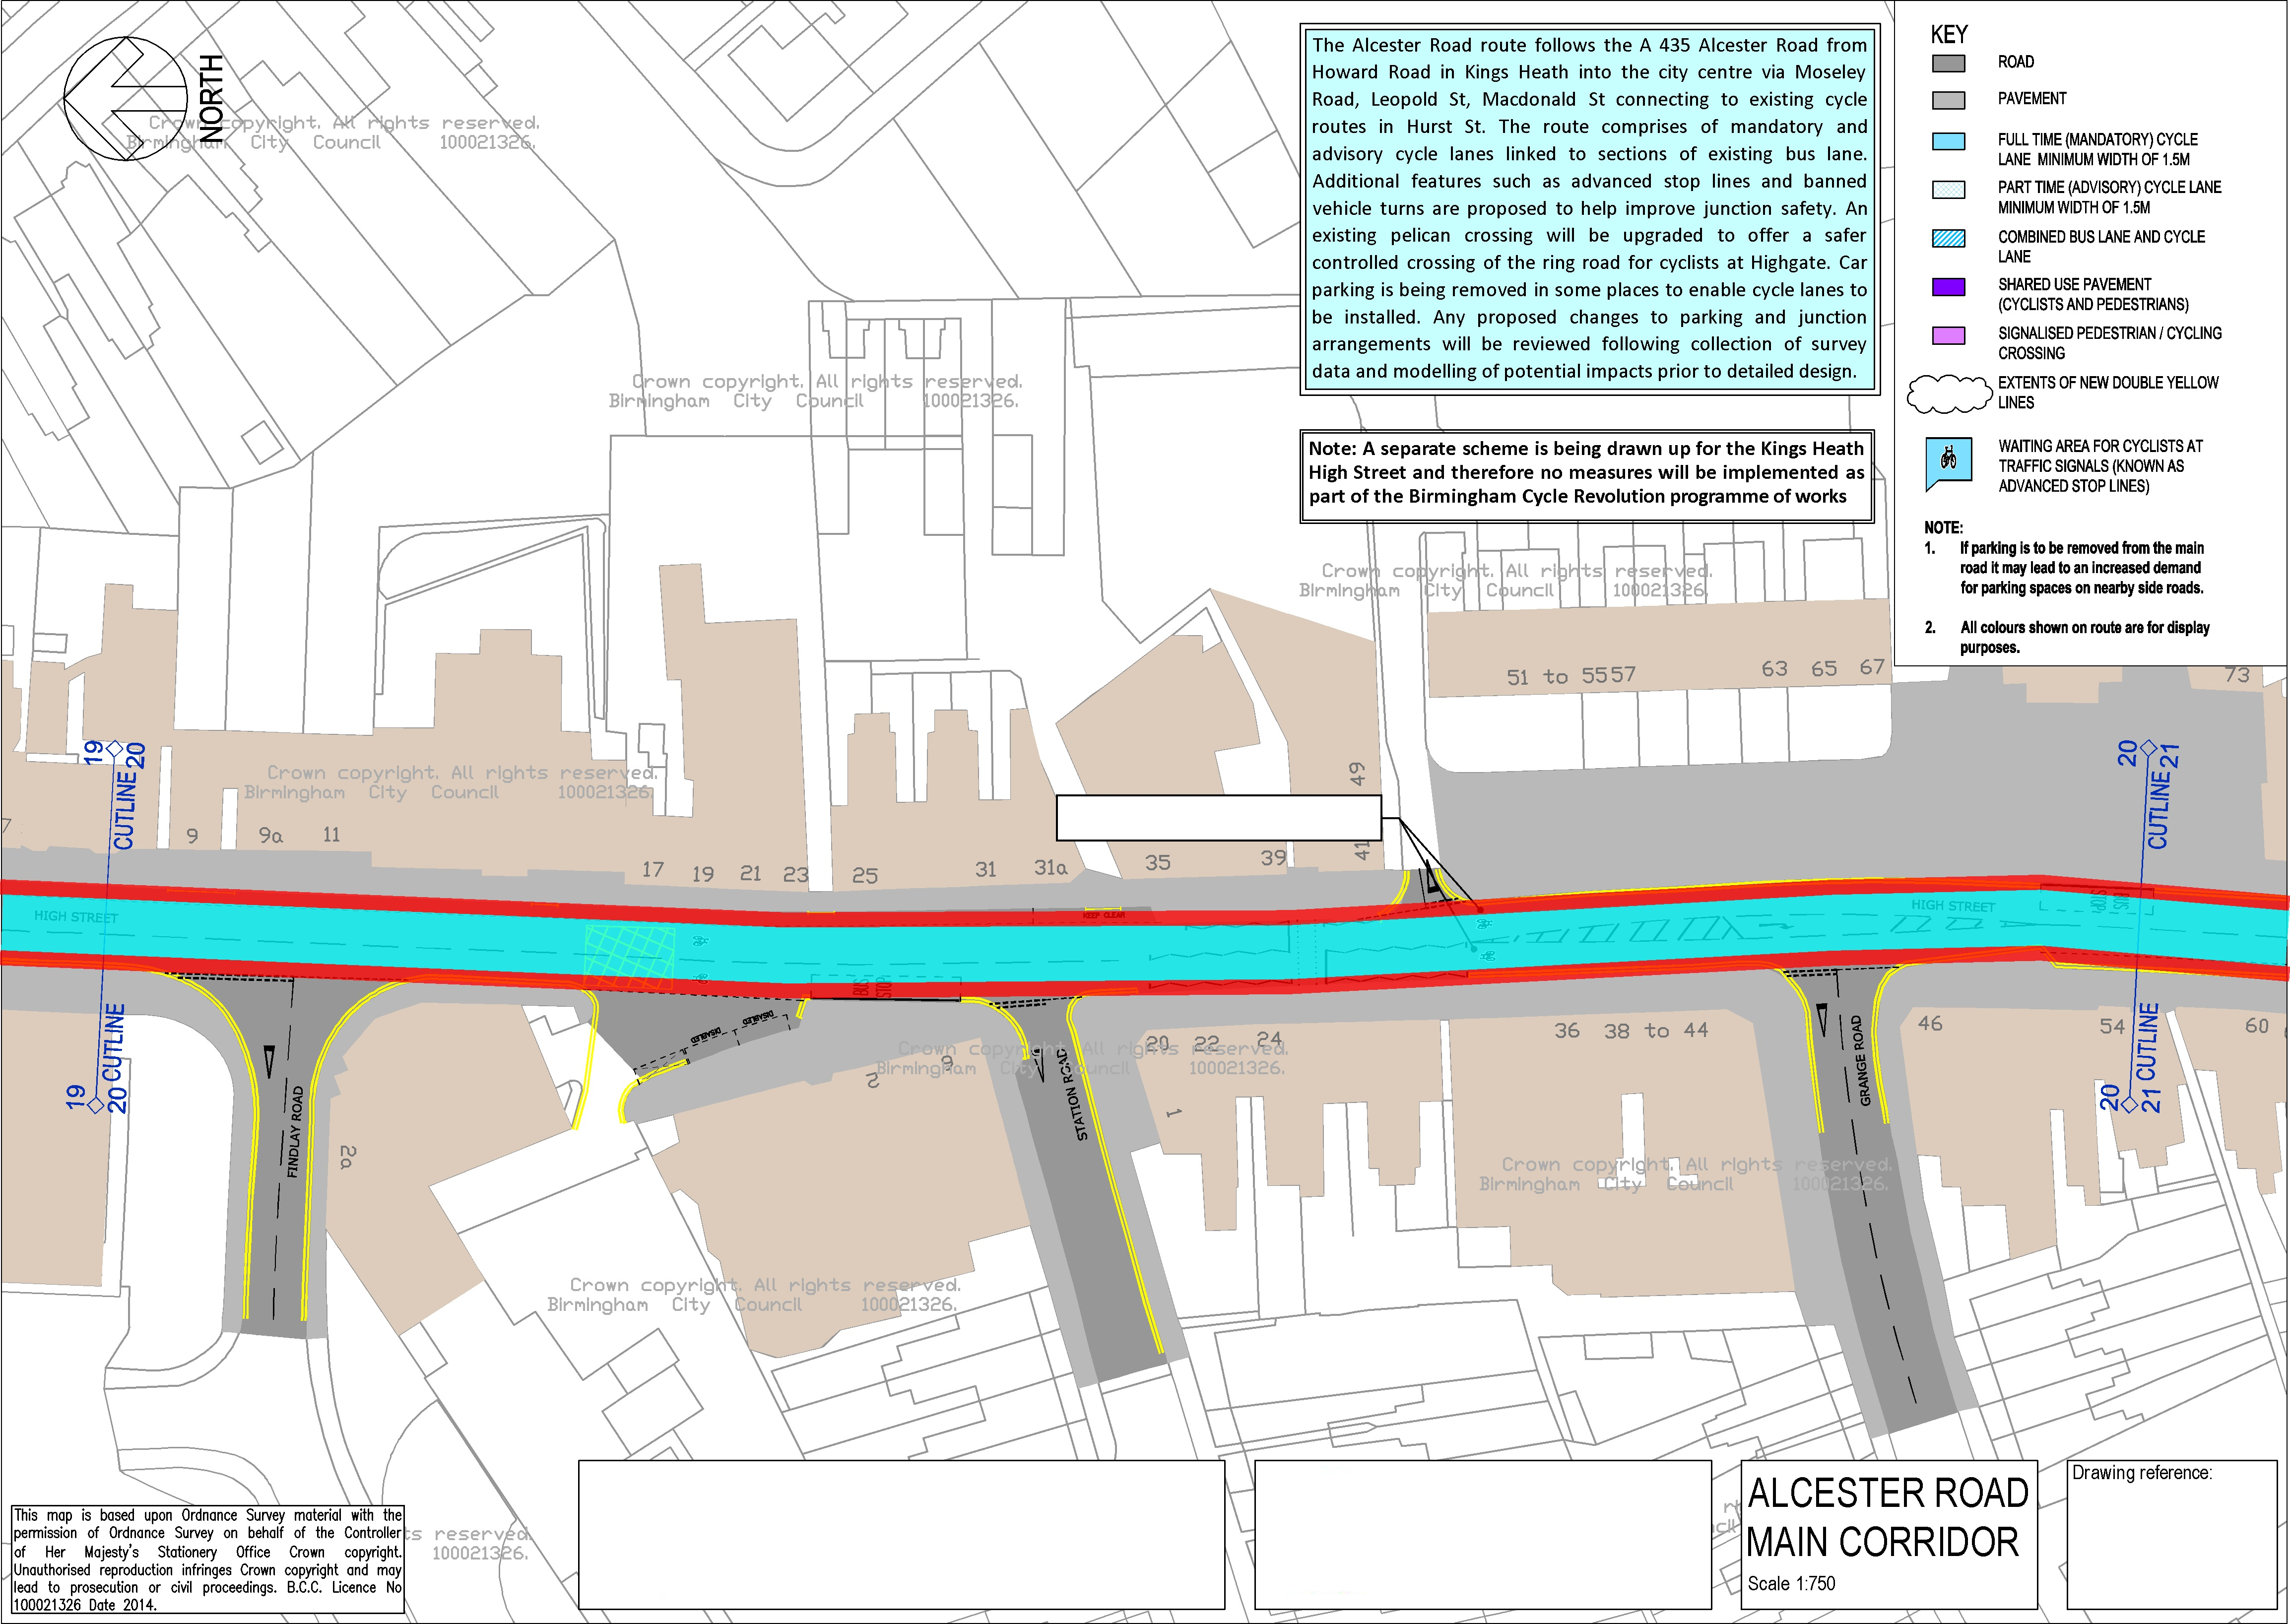 Push Bikes proposal for Kings Heath (section 2)